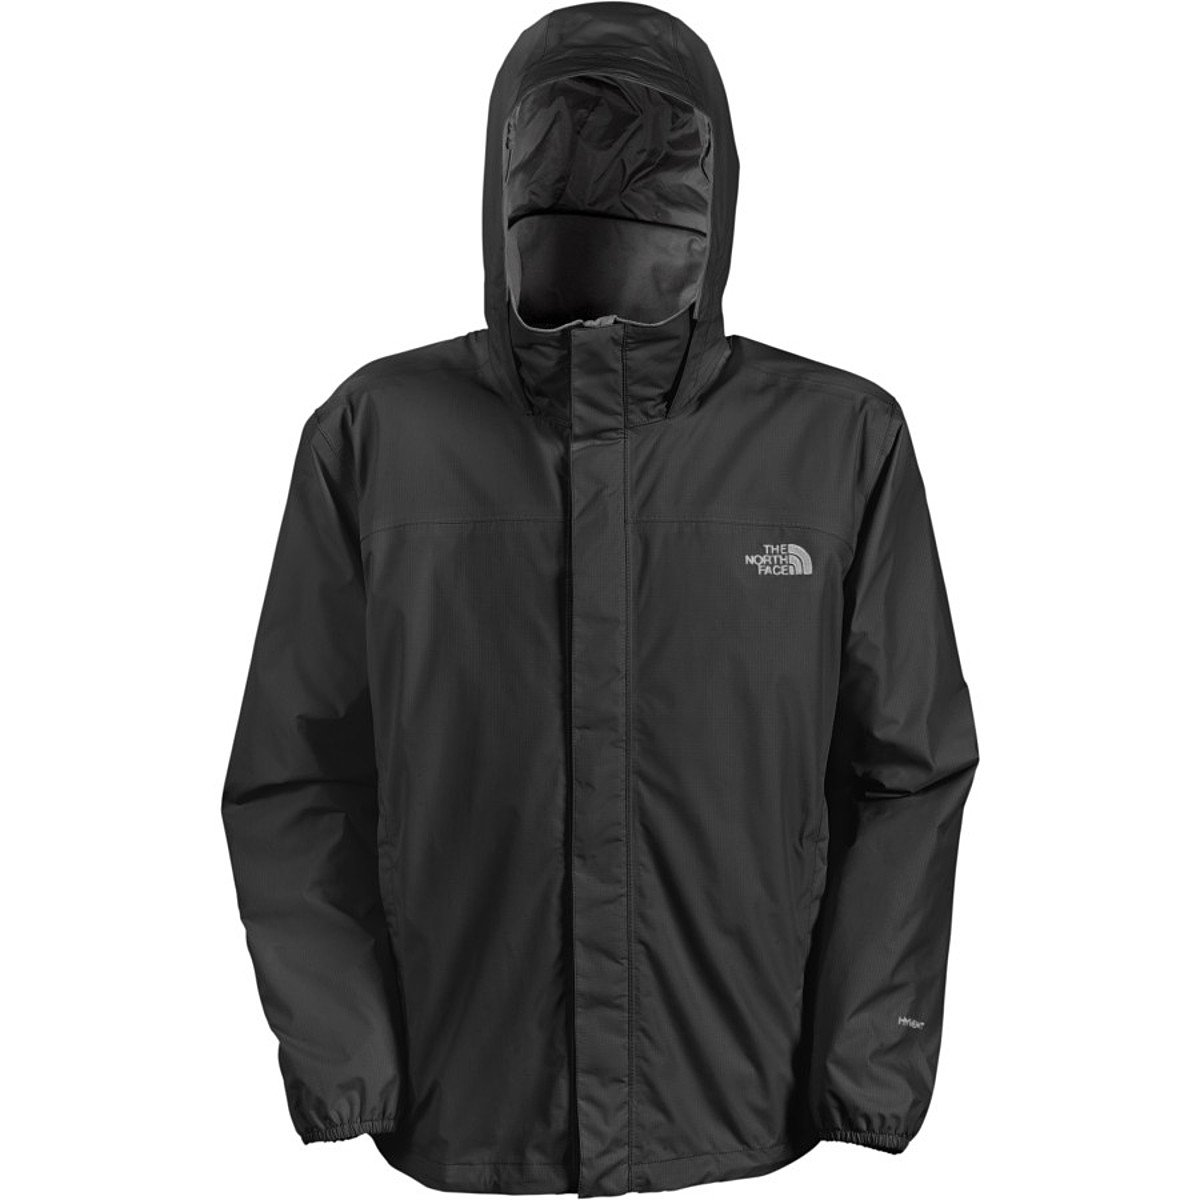 THE NORTH FACE Herren Jacke Resolve günstig kaufen